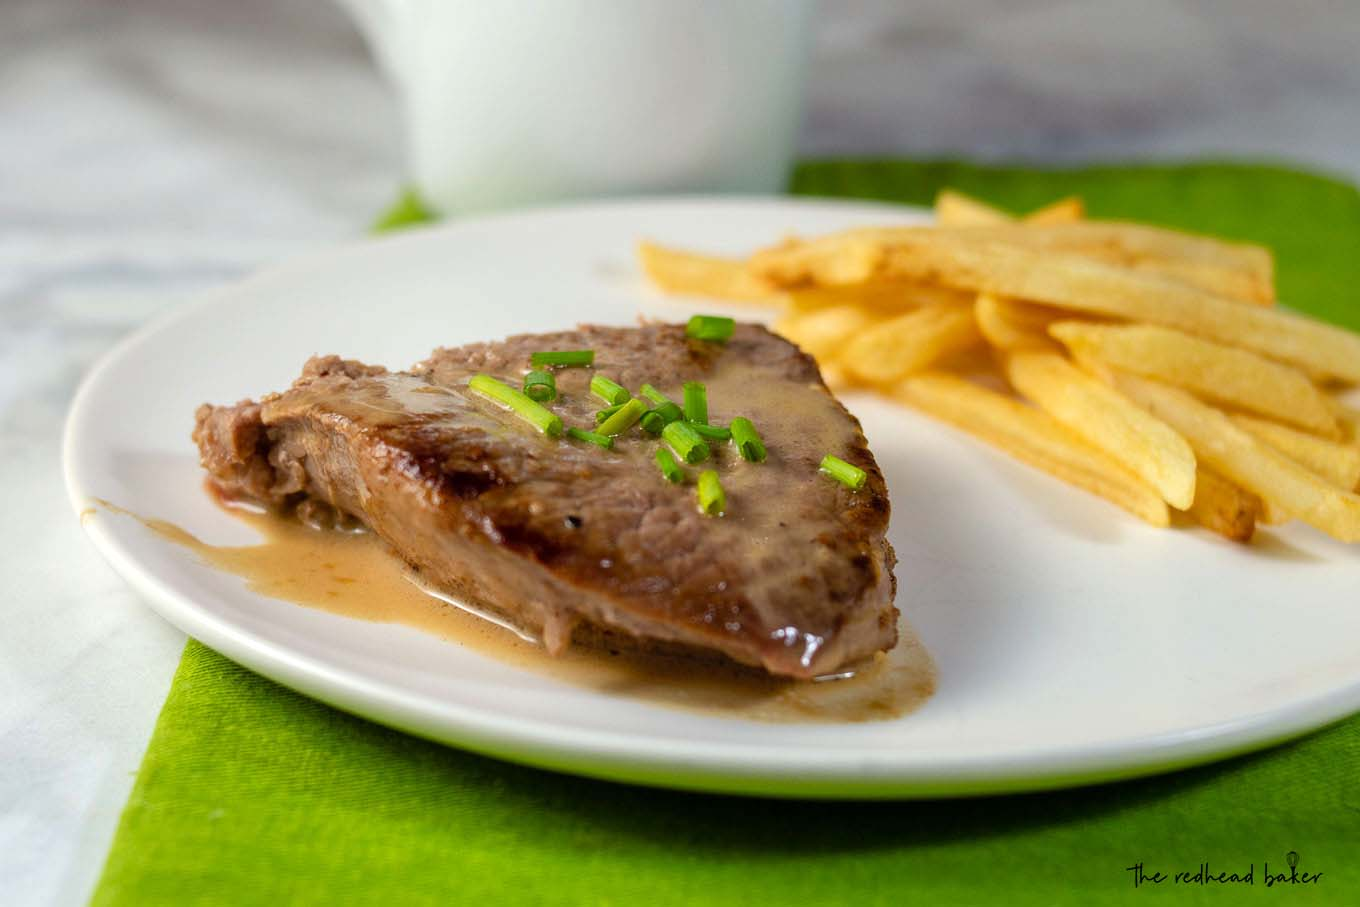 A plate of steak with whiskey sauce and a side of French fries